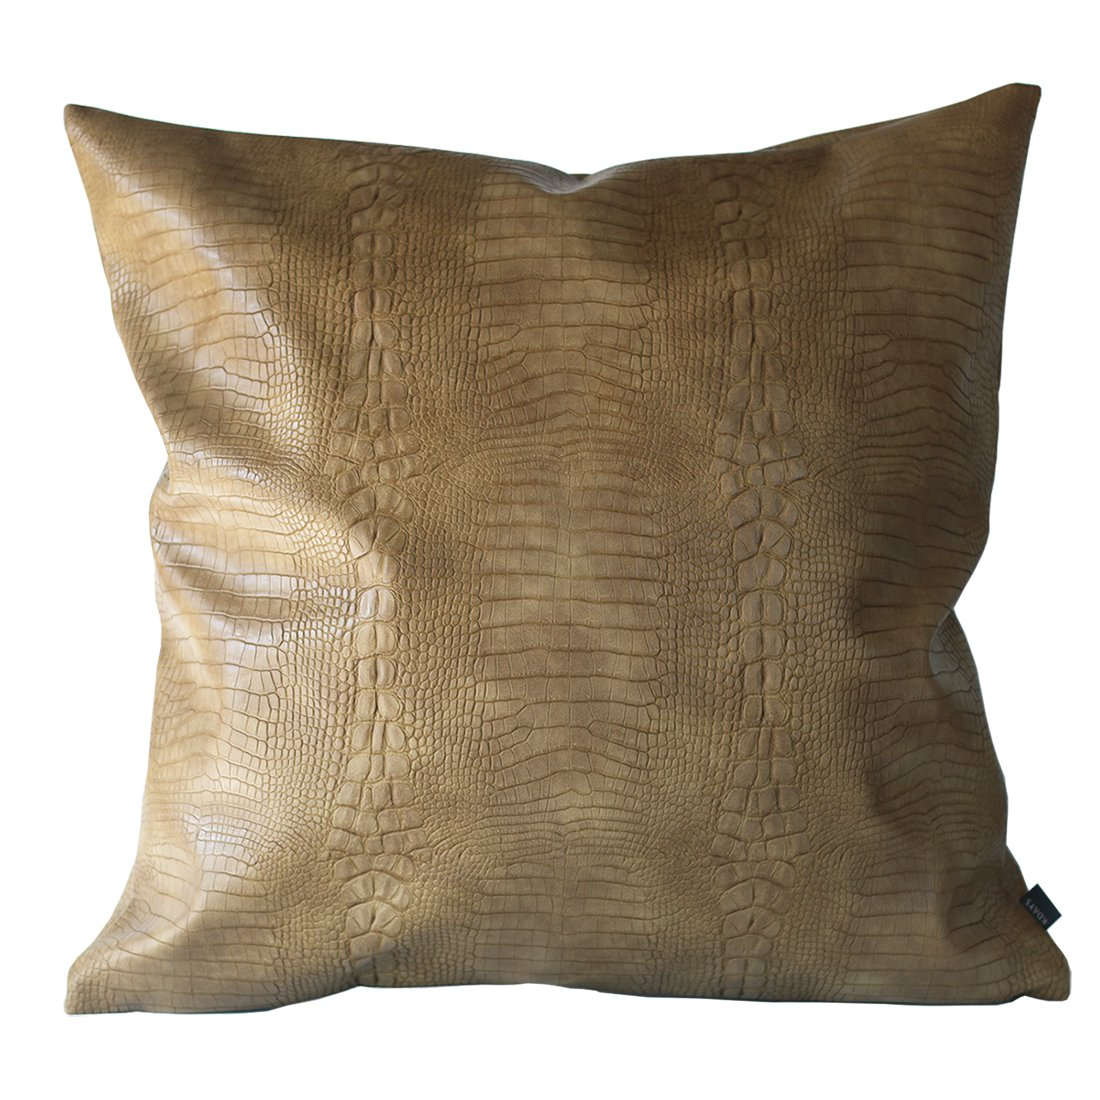 Buy Kdays Tan Beige Crocodile Skin Thick Soft Faux Leather Pillow Cover Decorative For Couch Throw Pillow Case Brown Leather Cushion Modern Minimalist Waterproof Pillow Cover 22x22 Inches Online At Low Prices